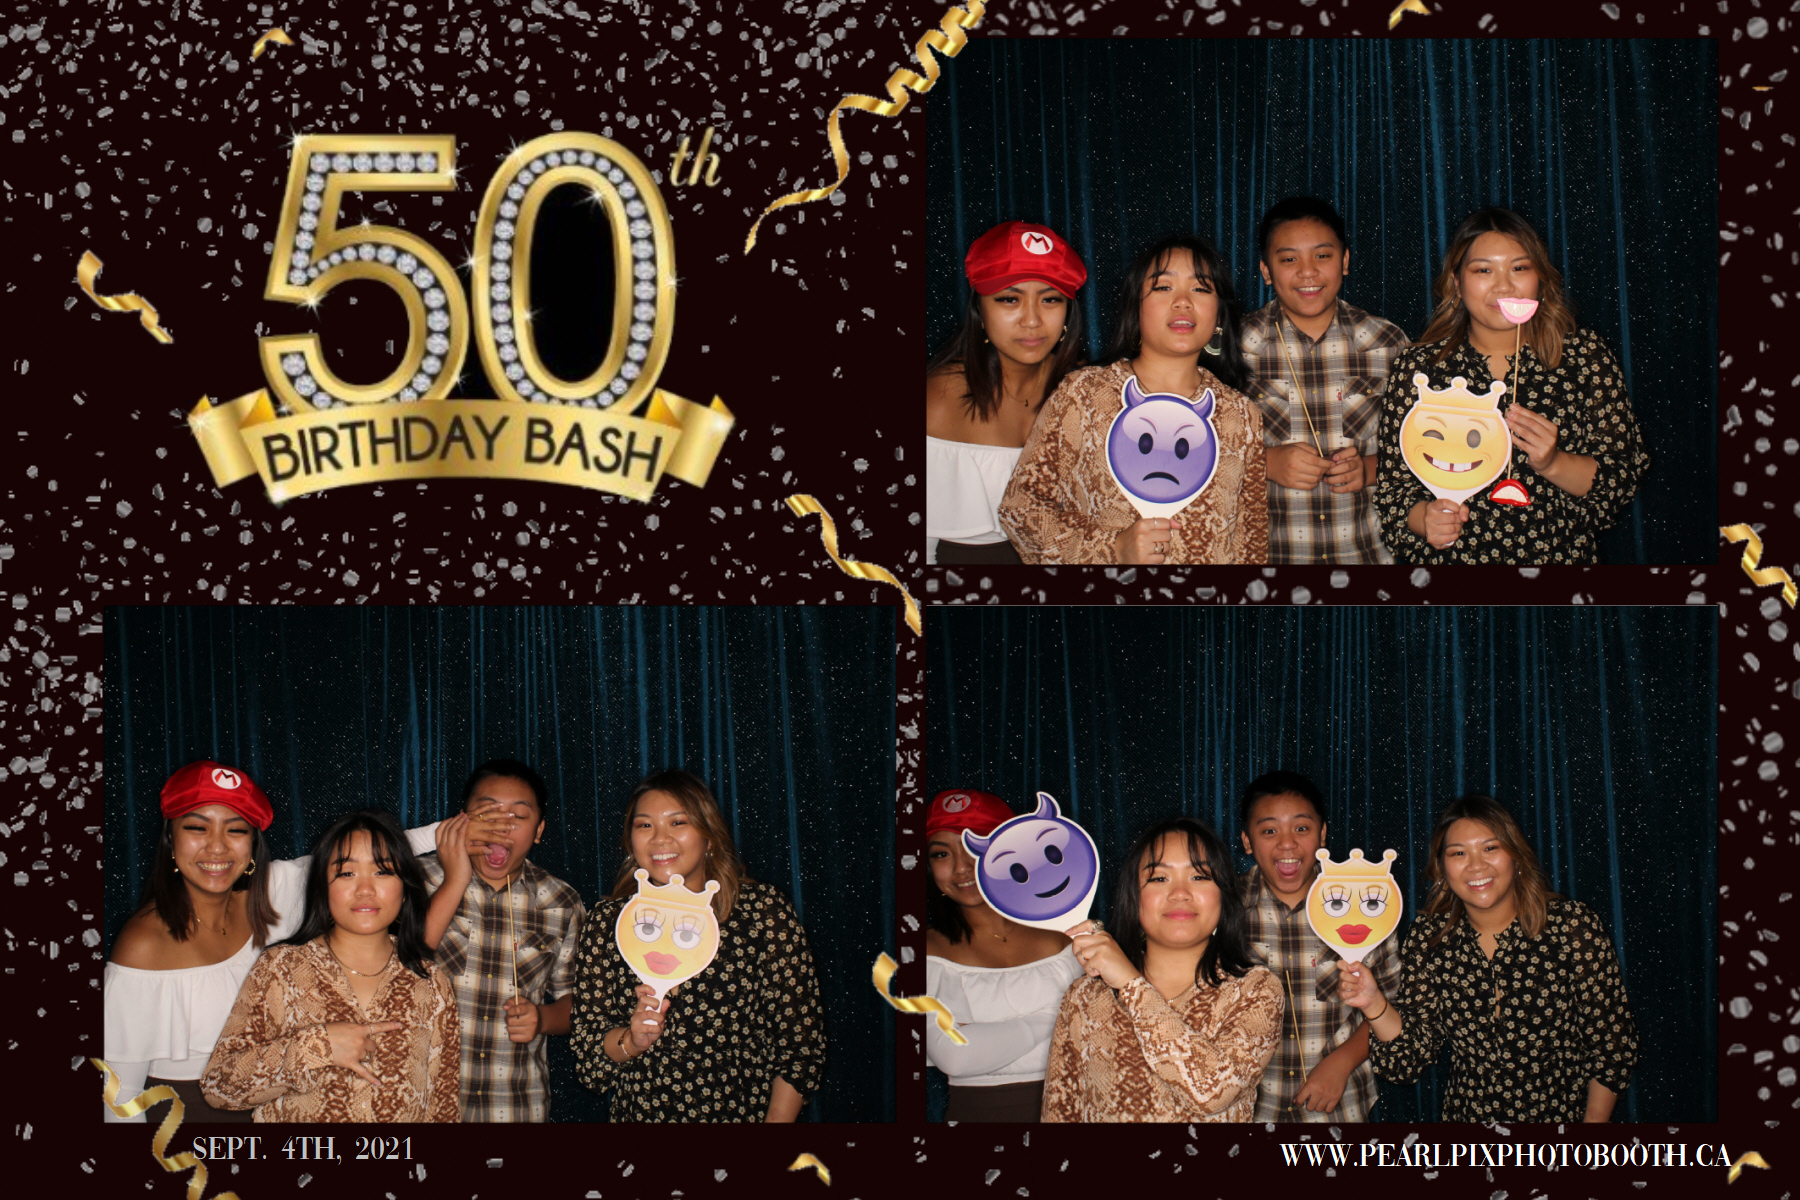 Peter_s 50th Bday_39